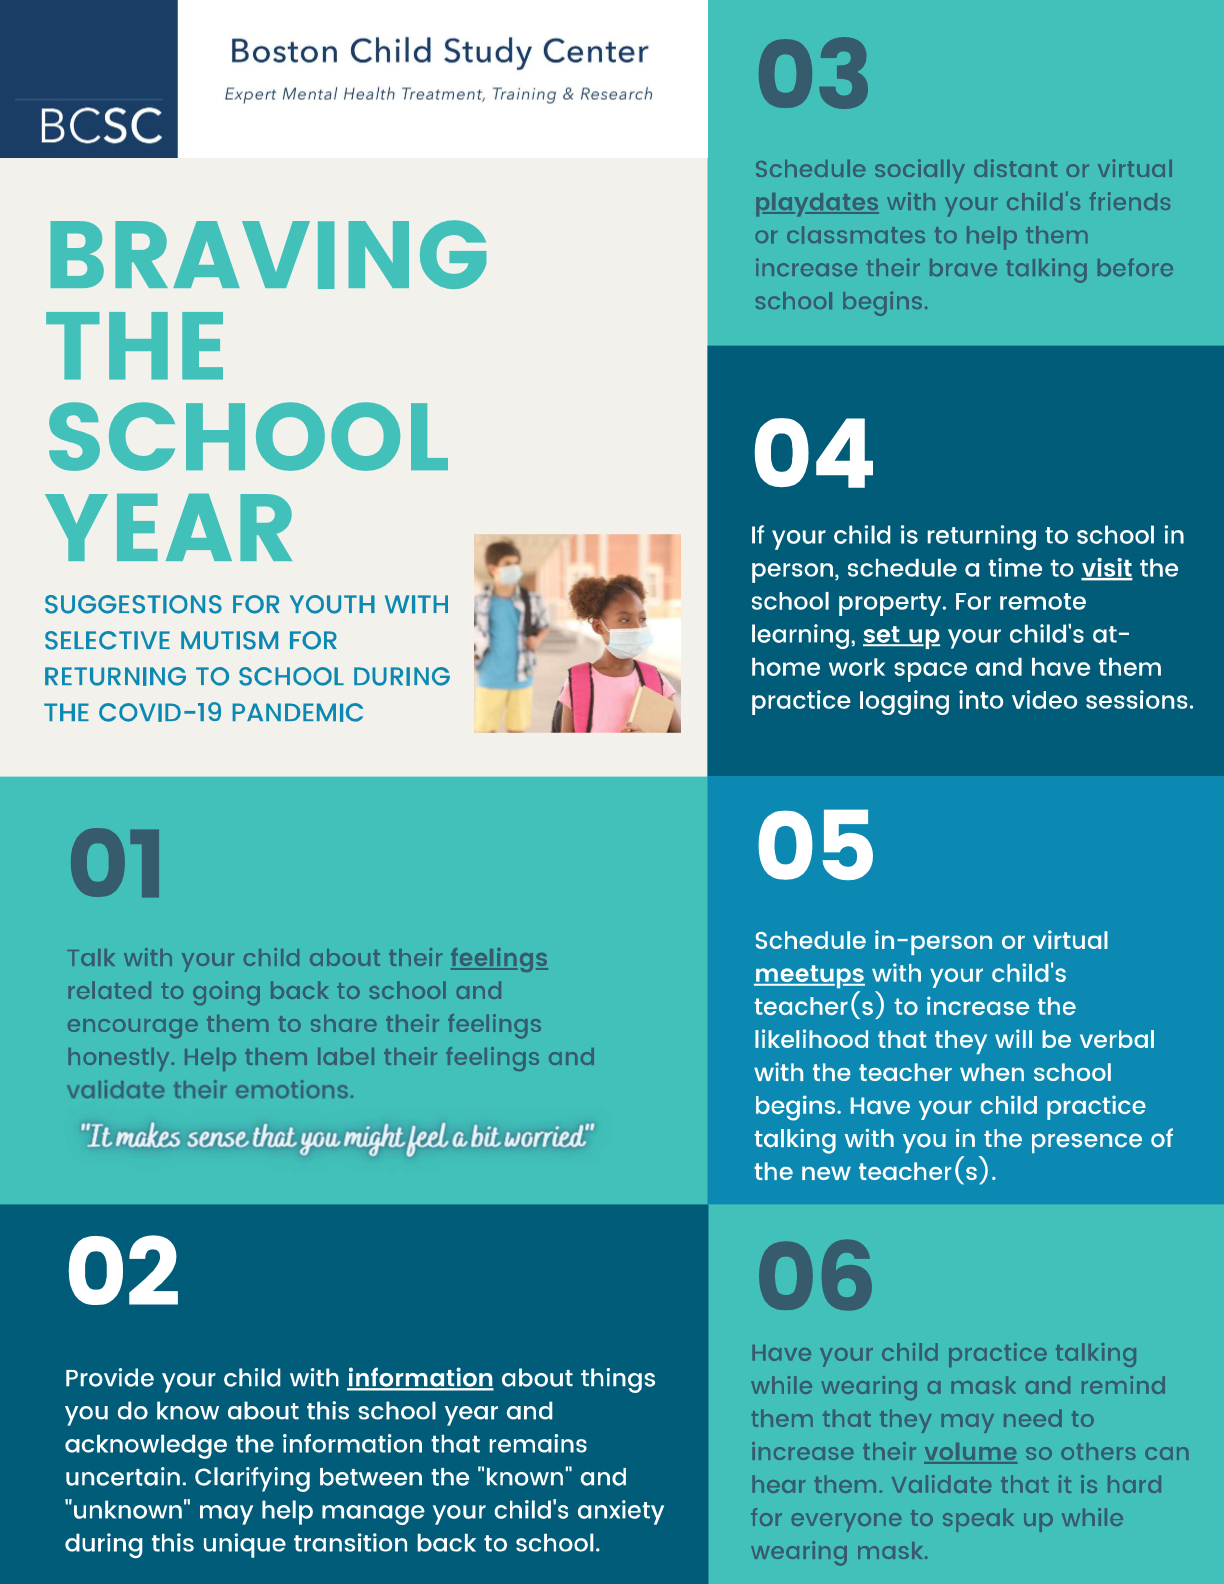 Returning to School During The COVID-19 Pandemic: Tips for Youth with Selective Mutism